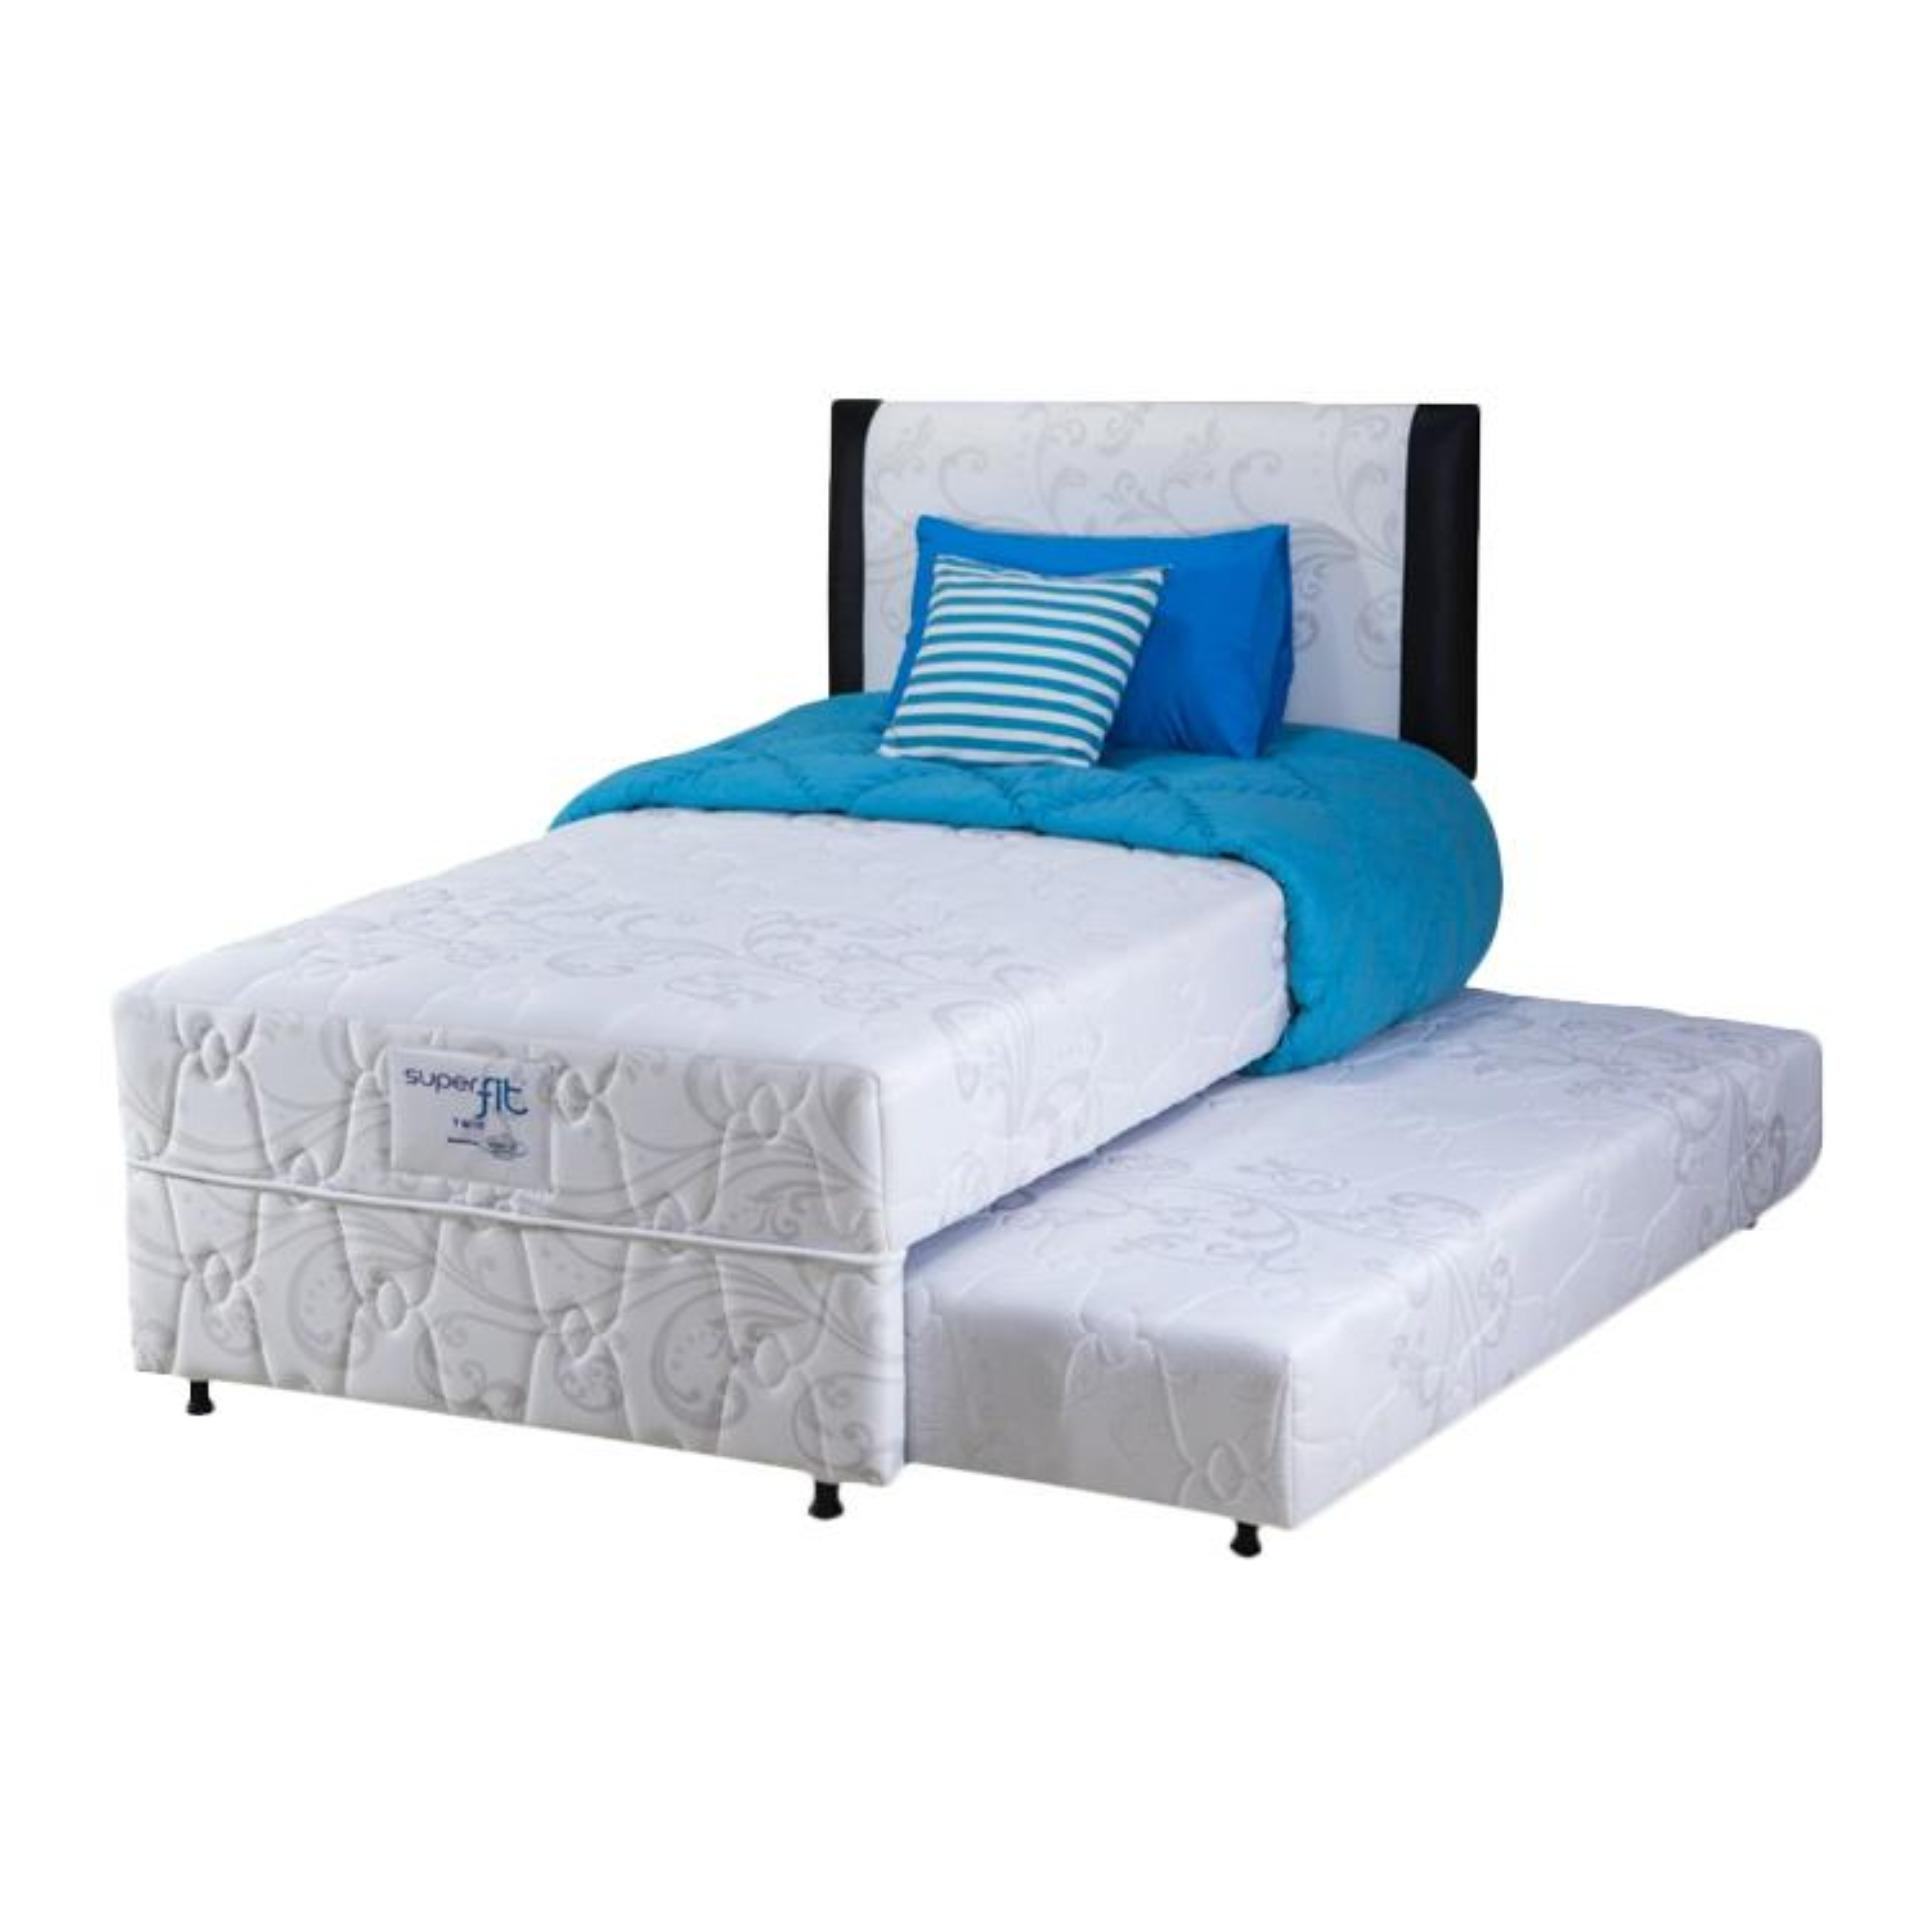 Comforta Springbed 2in1 Twin SuperFit Uk.100